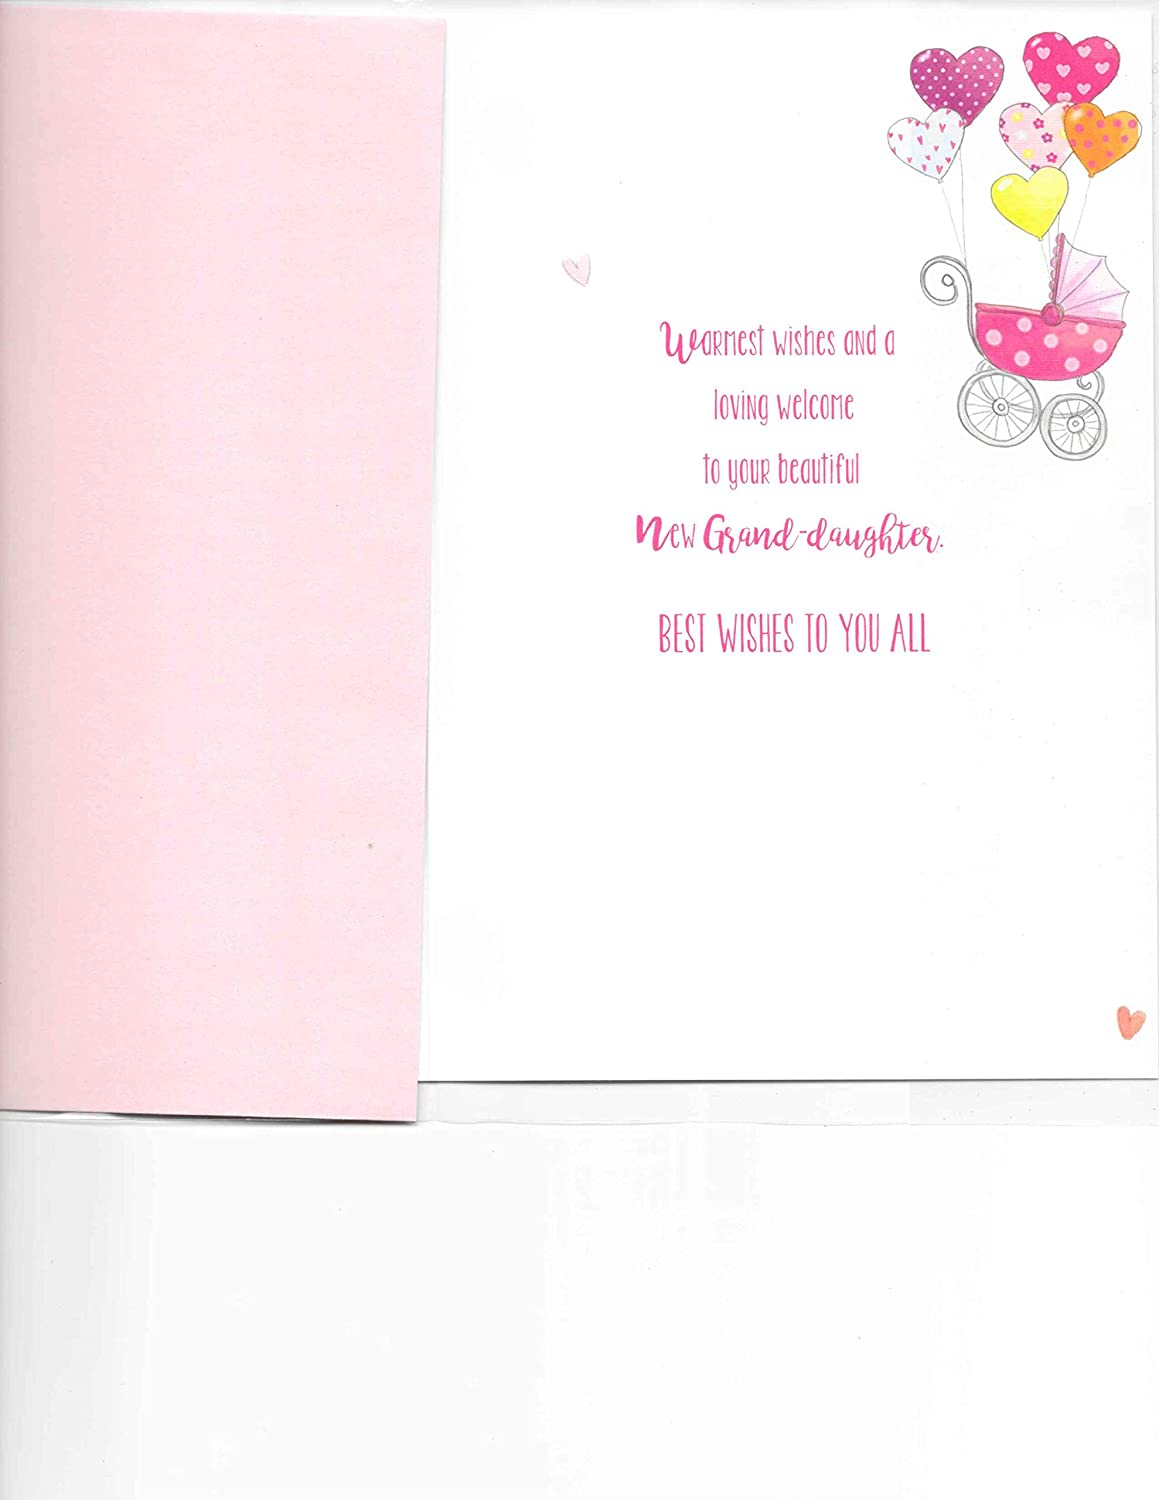 Newborn Granddaughter Greeting Card New Baby Congratulations 20 x 14 cm Quality Card On The Birth of Your Granddaughter